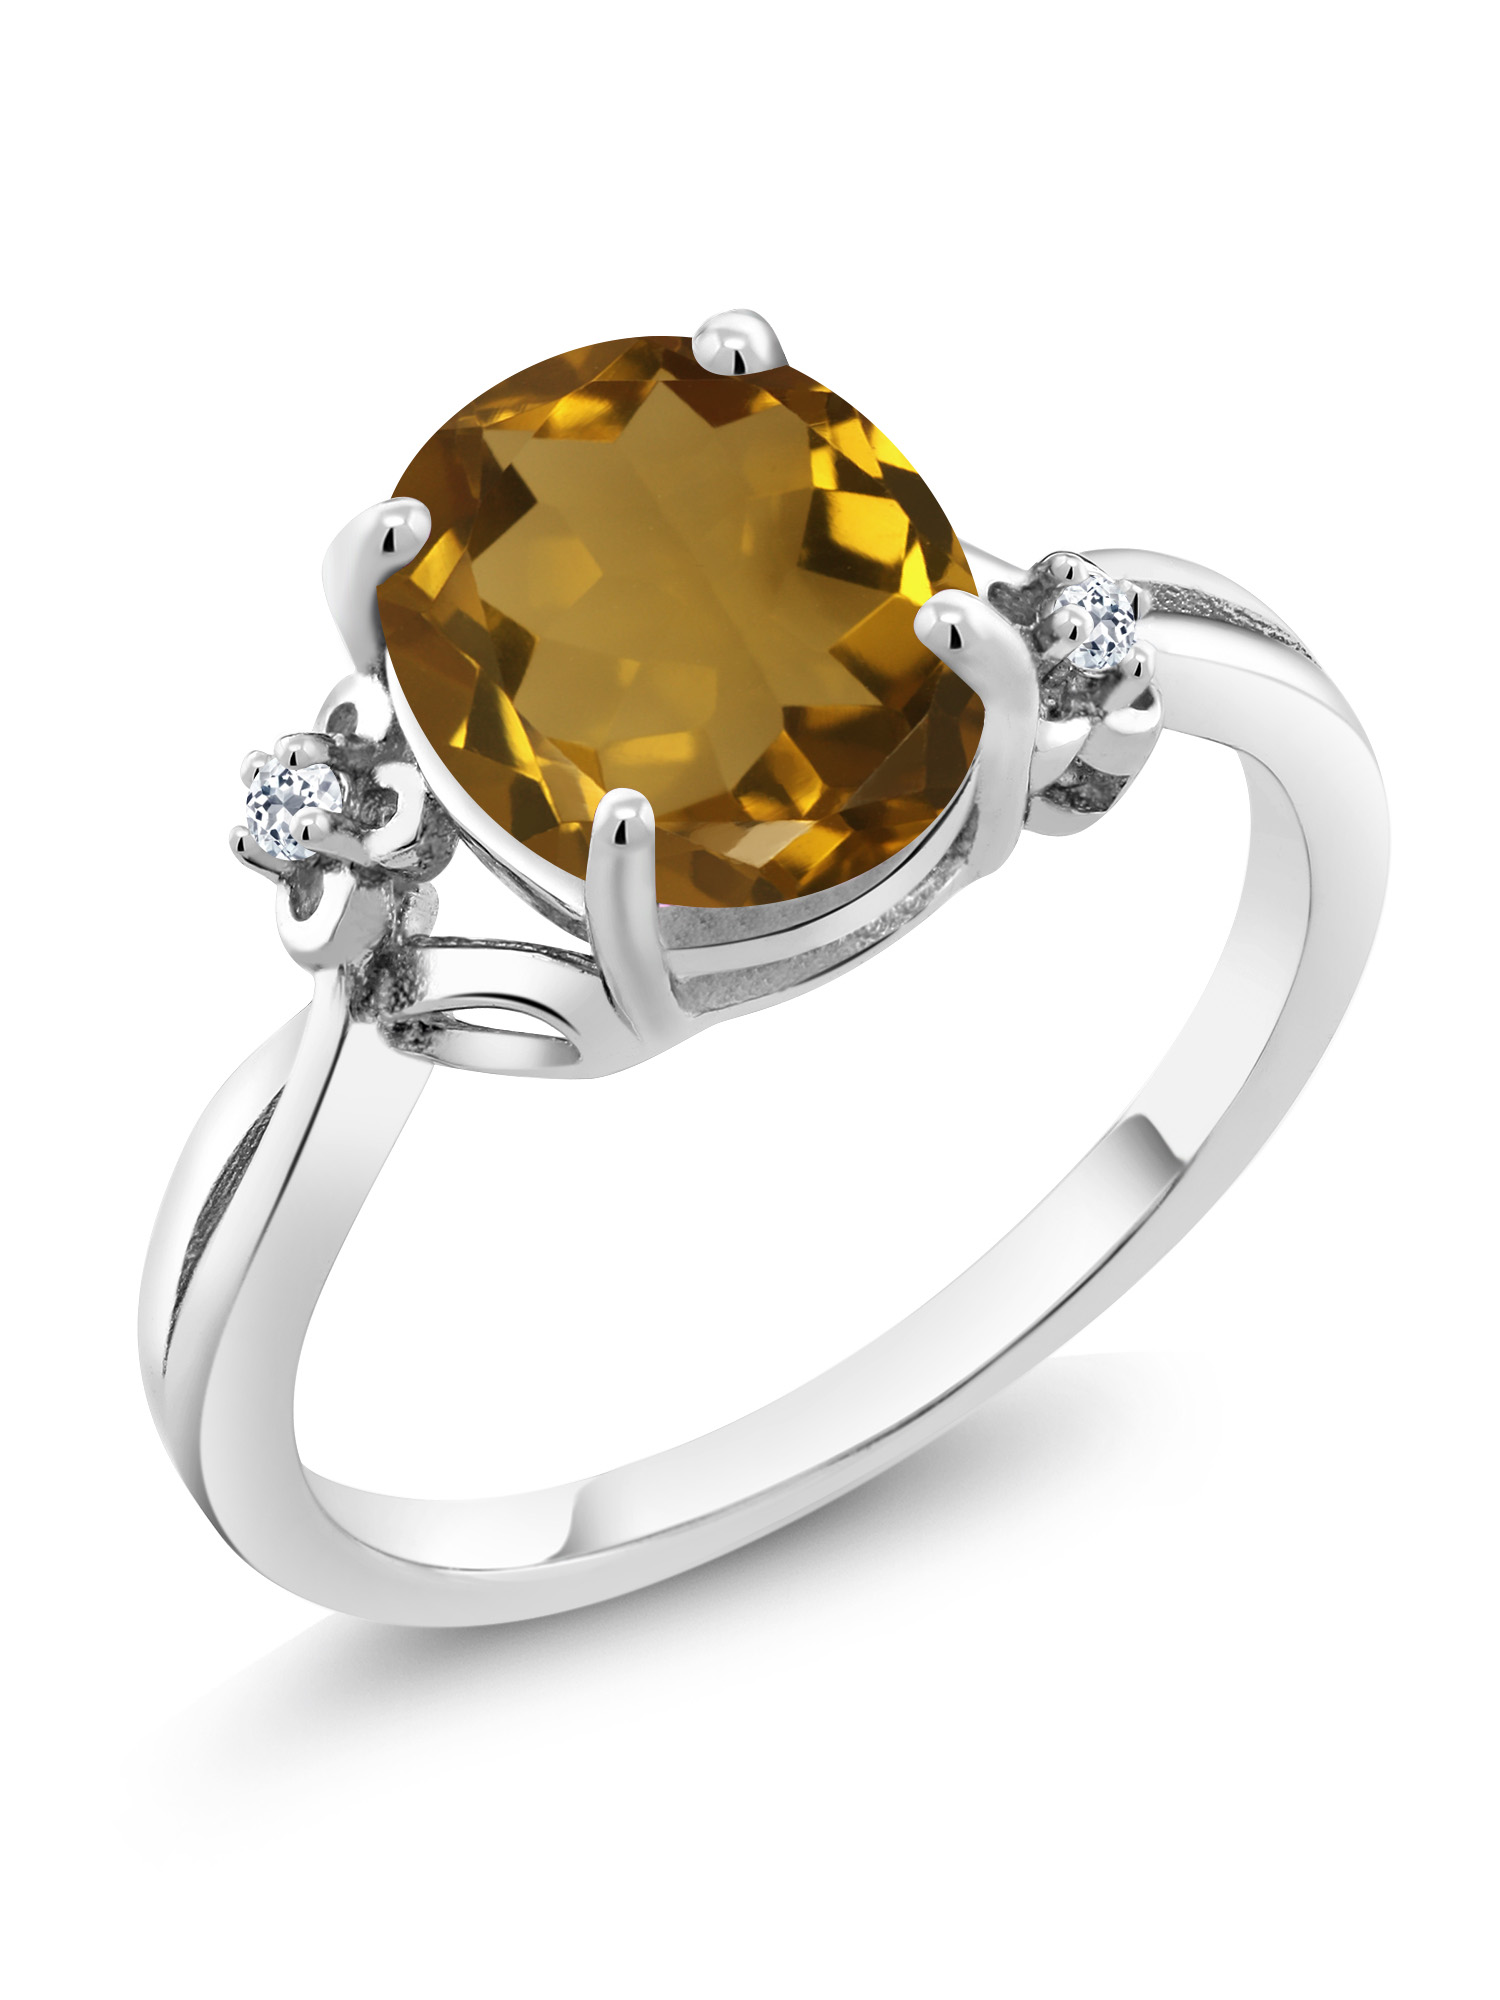 2.04 Ct Oval Whiskey Quartz White Topaz 925 Sterling Silver Ring